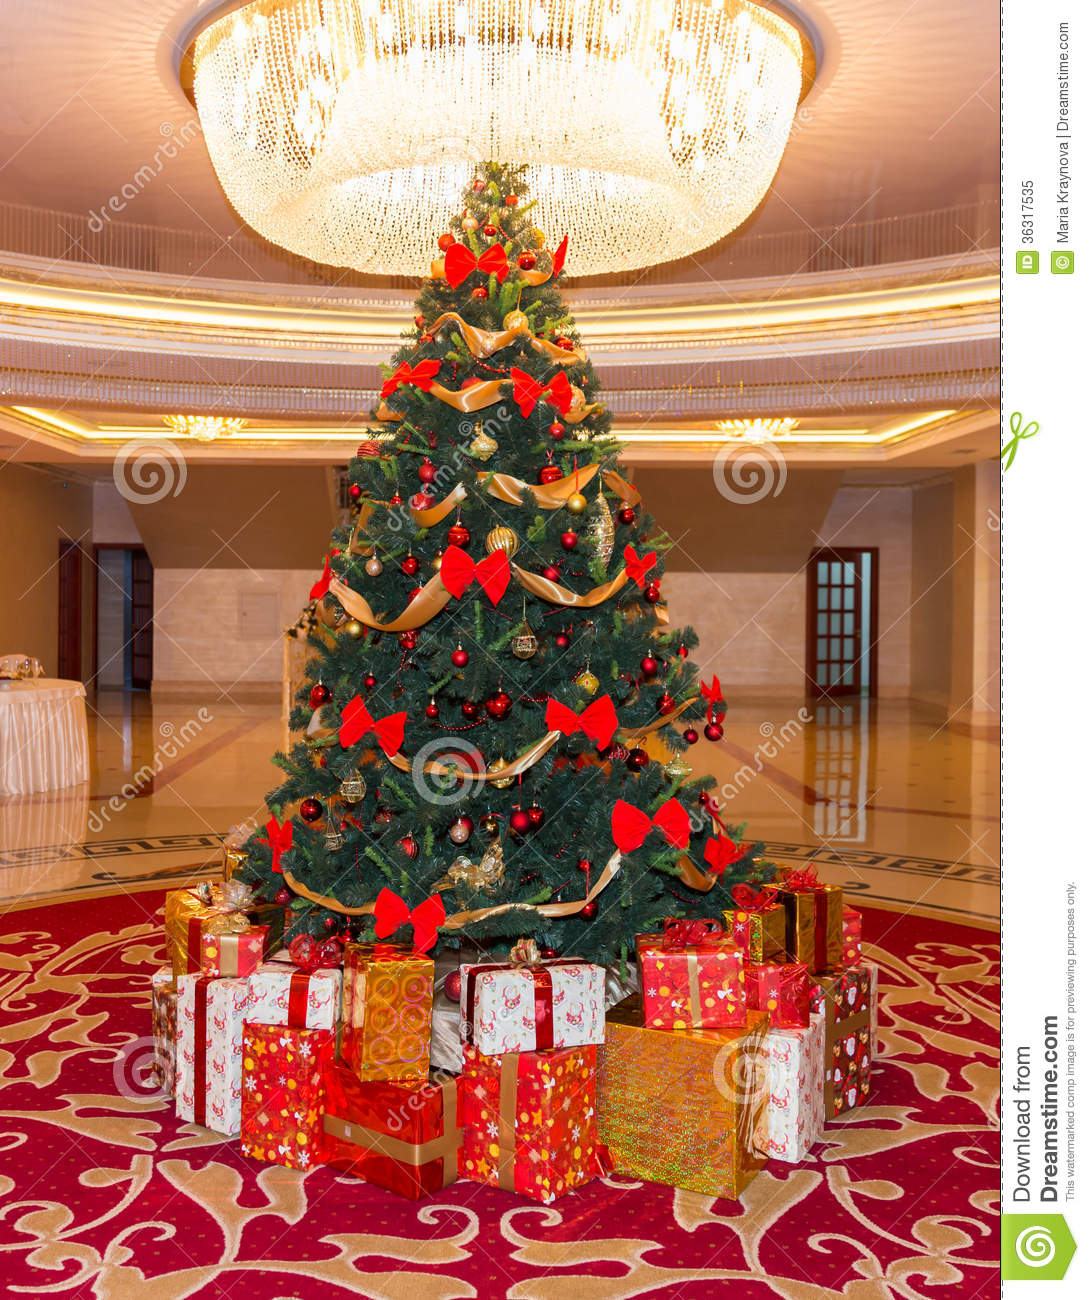 Picture Of Christmas Tree With Presents: Christmas Presents Royalty Free Stock Photo